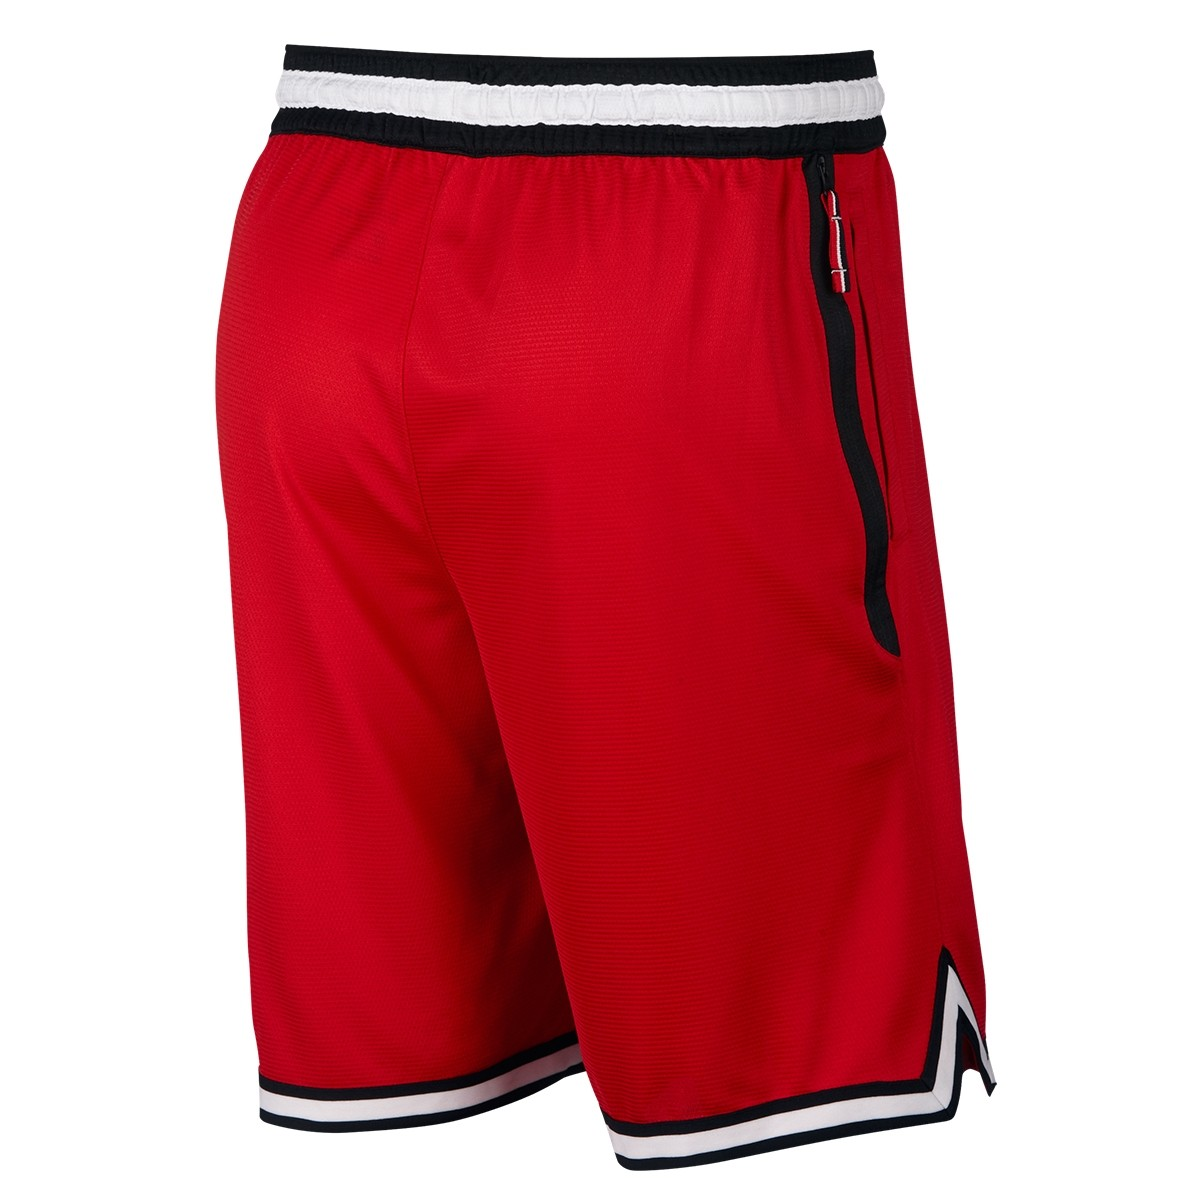 Nike Dri-FIT DNA 'Red'-AT3150-657